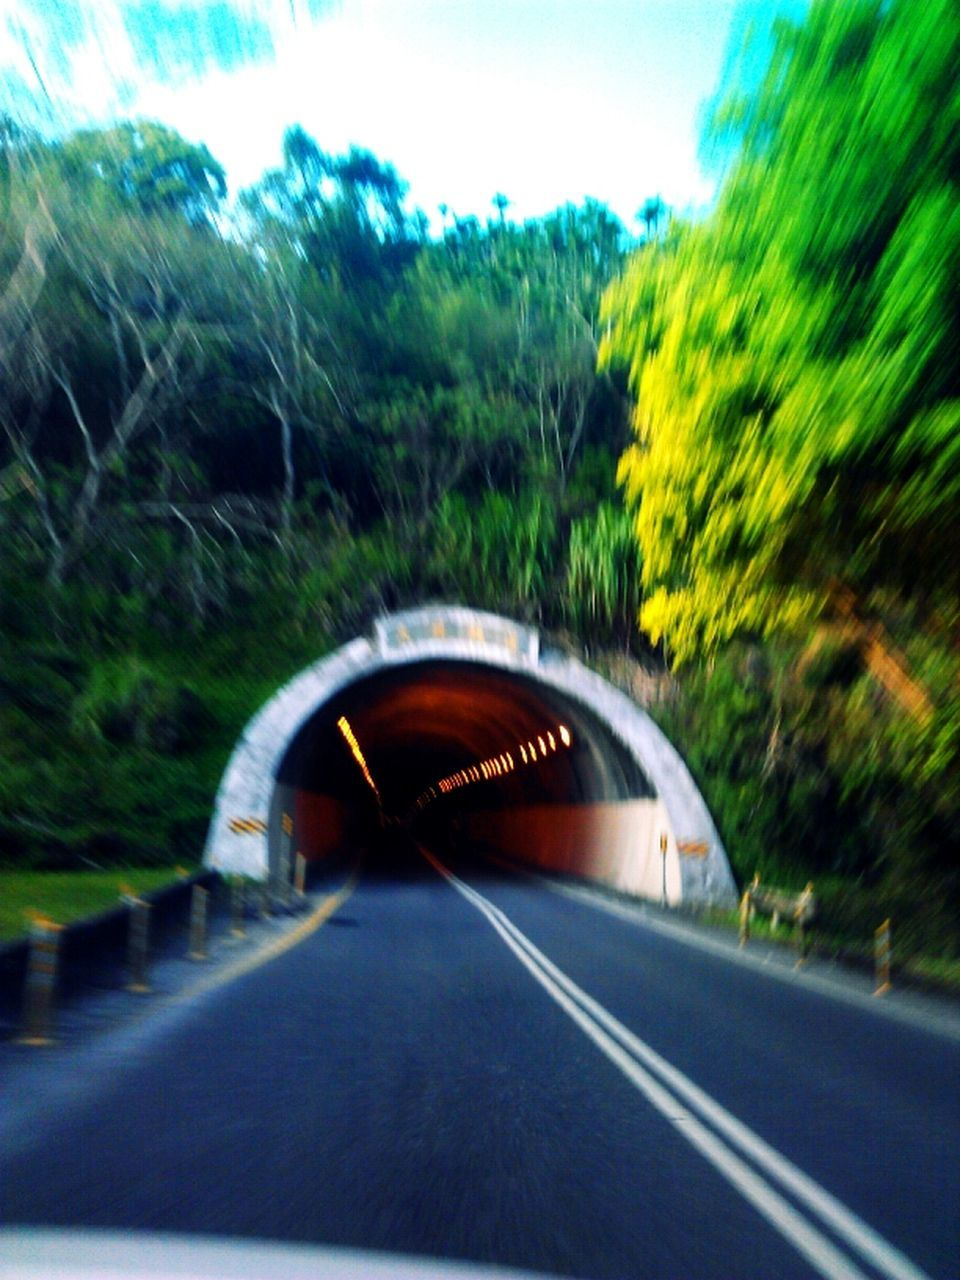 transportation, road, bridge - man made structure, the way forward, connection, day, no people, car, tree, land vehicle, growth, outdoors, nature, close-up, sky